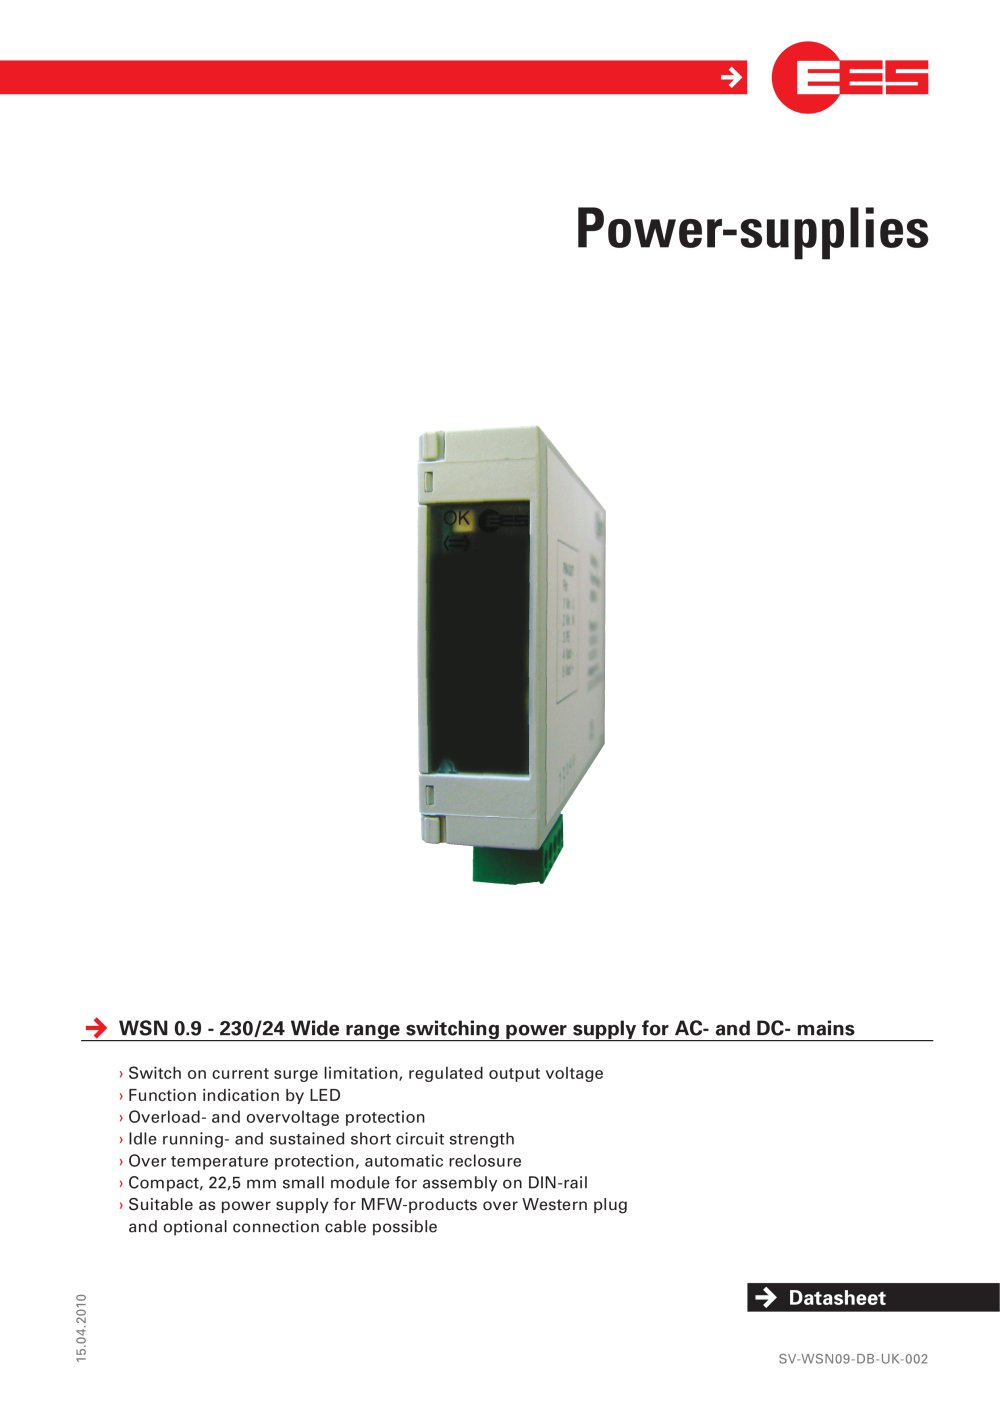 Power Supplies Wsn 09 Elektra Elektronik Gmbh Co Strcontroller Automatic Voltage Regulator Supply Circuit Powersupply 1 2 Pages